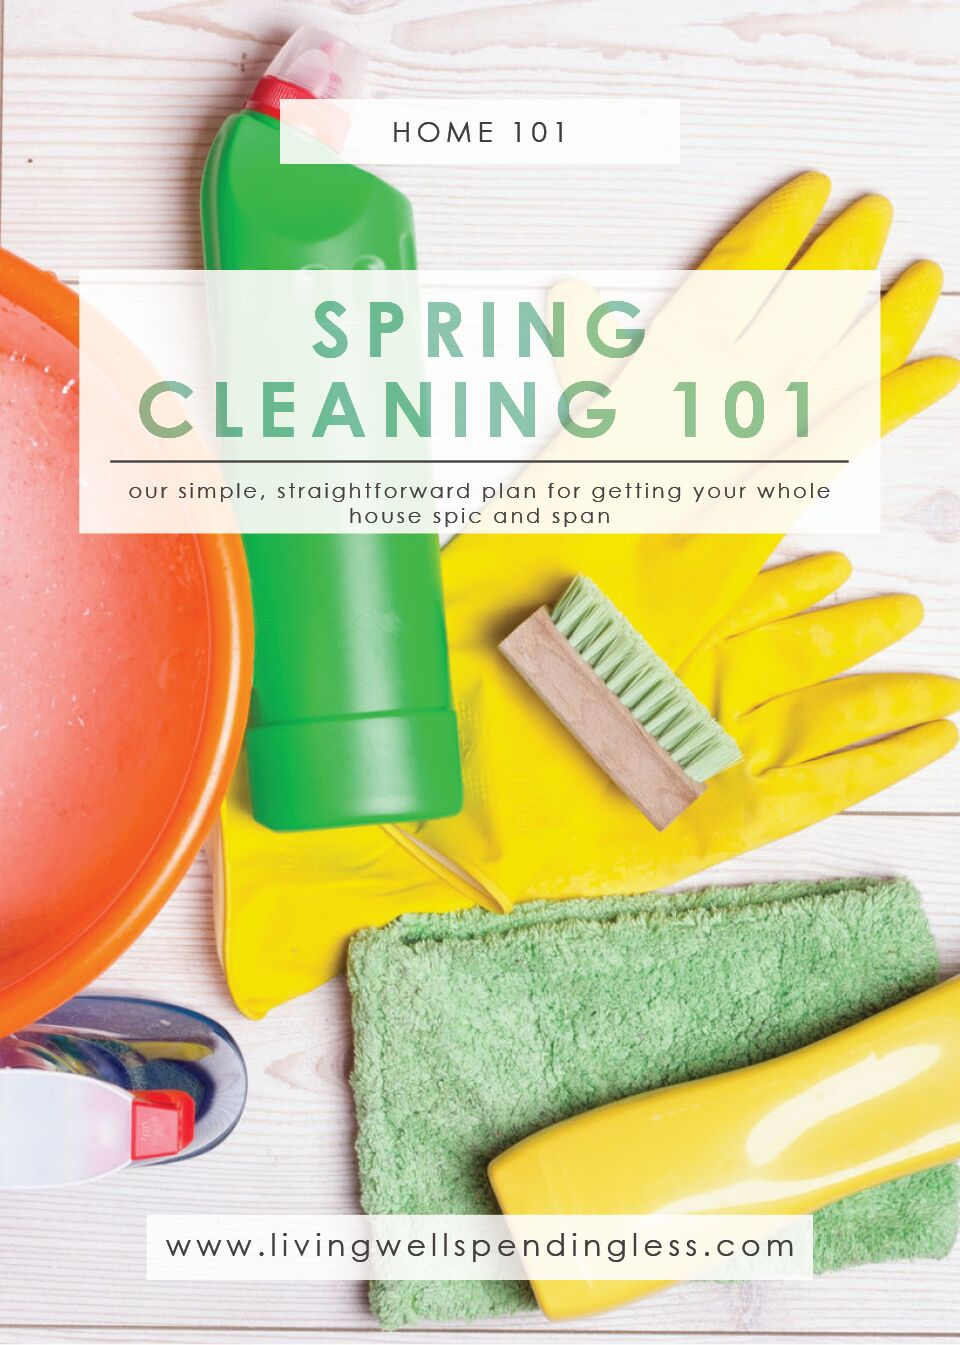 Ultimate Spring Cleaning Guide | Spring Cleaning Tips | Stress-Free Cleaning Guide | Spring Cleaning Made Easy